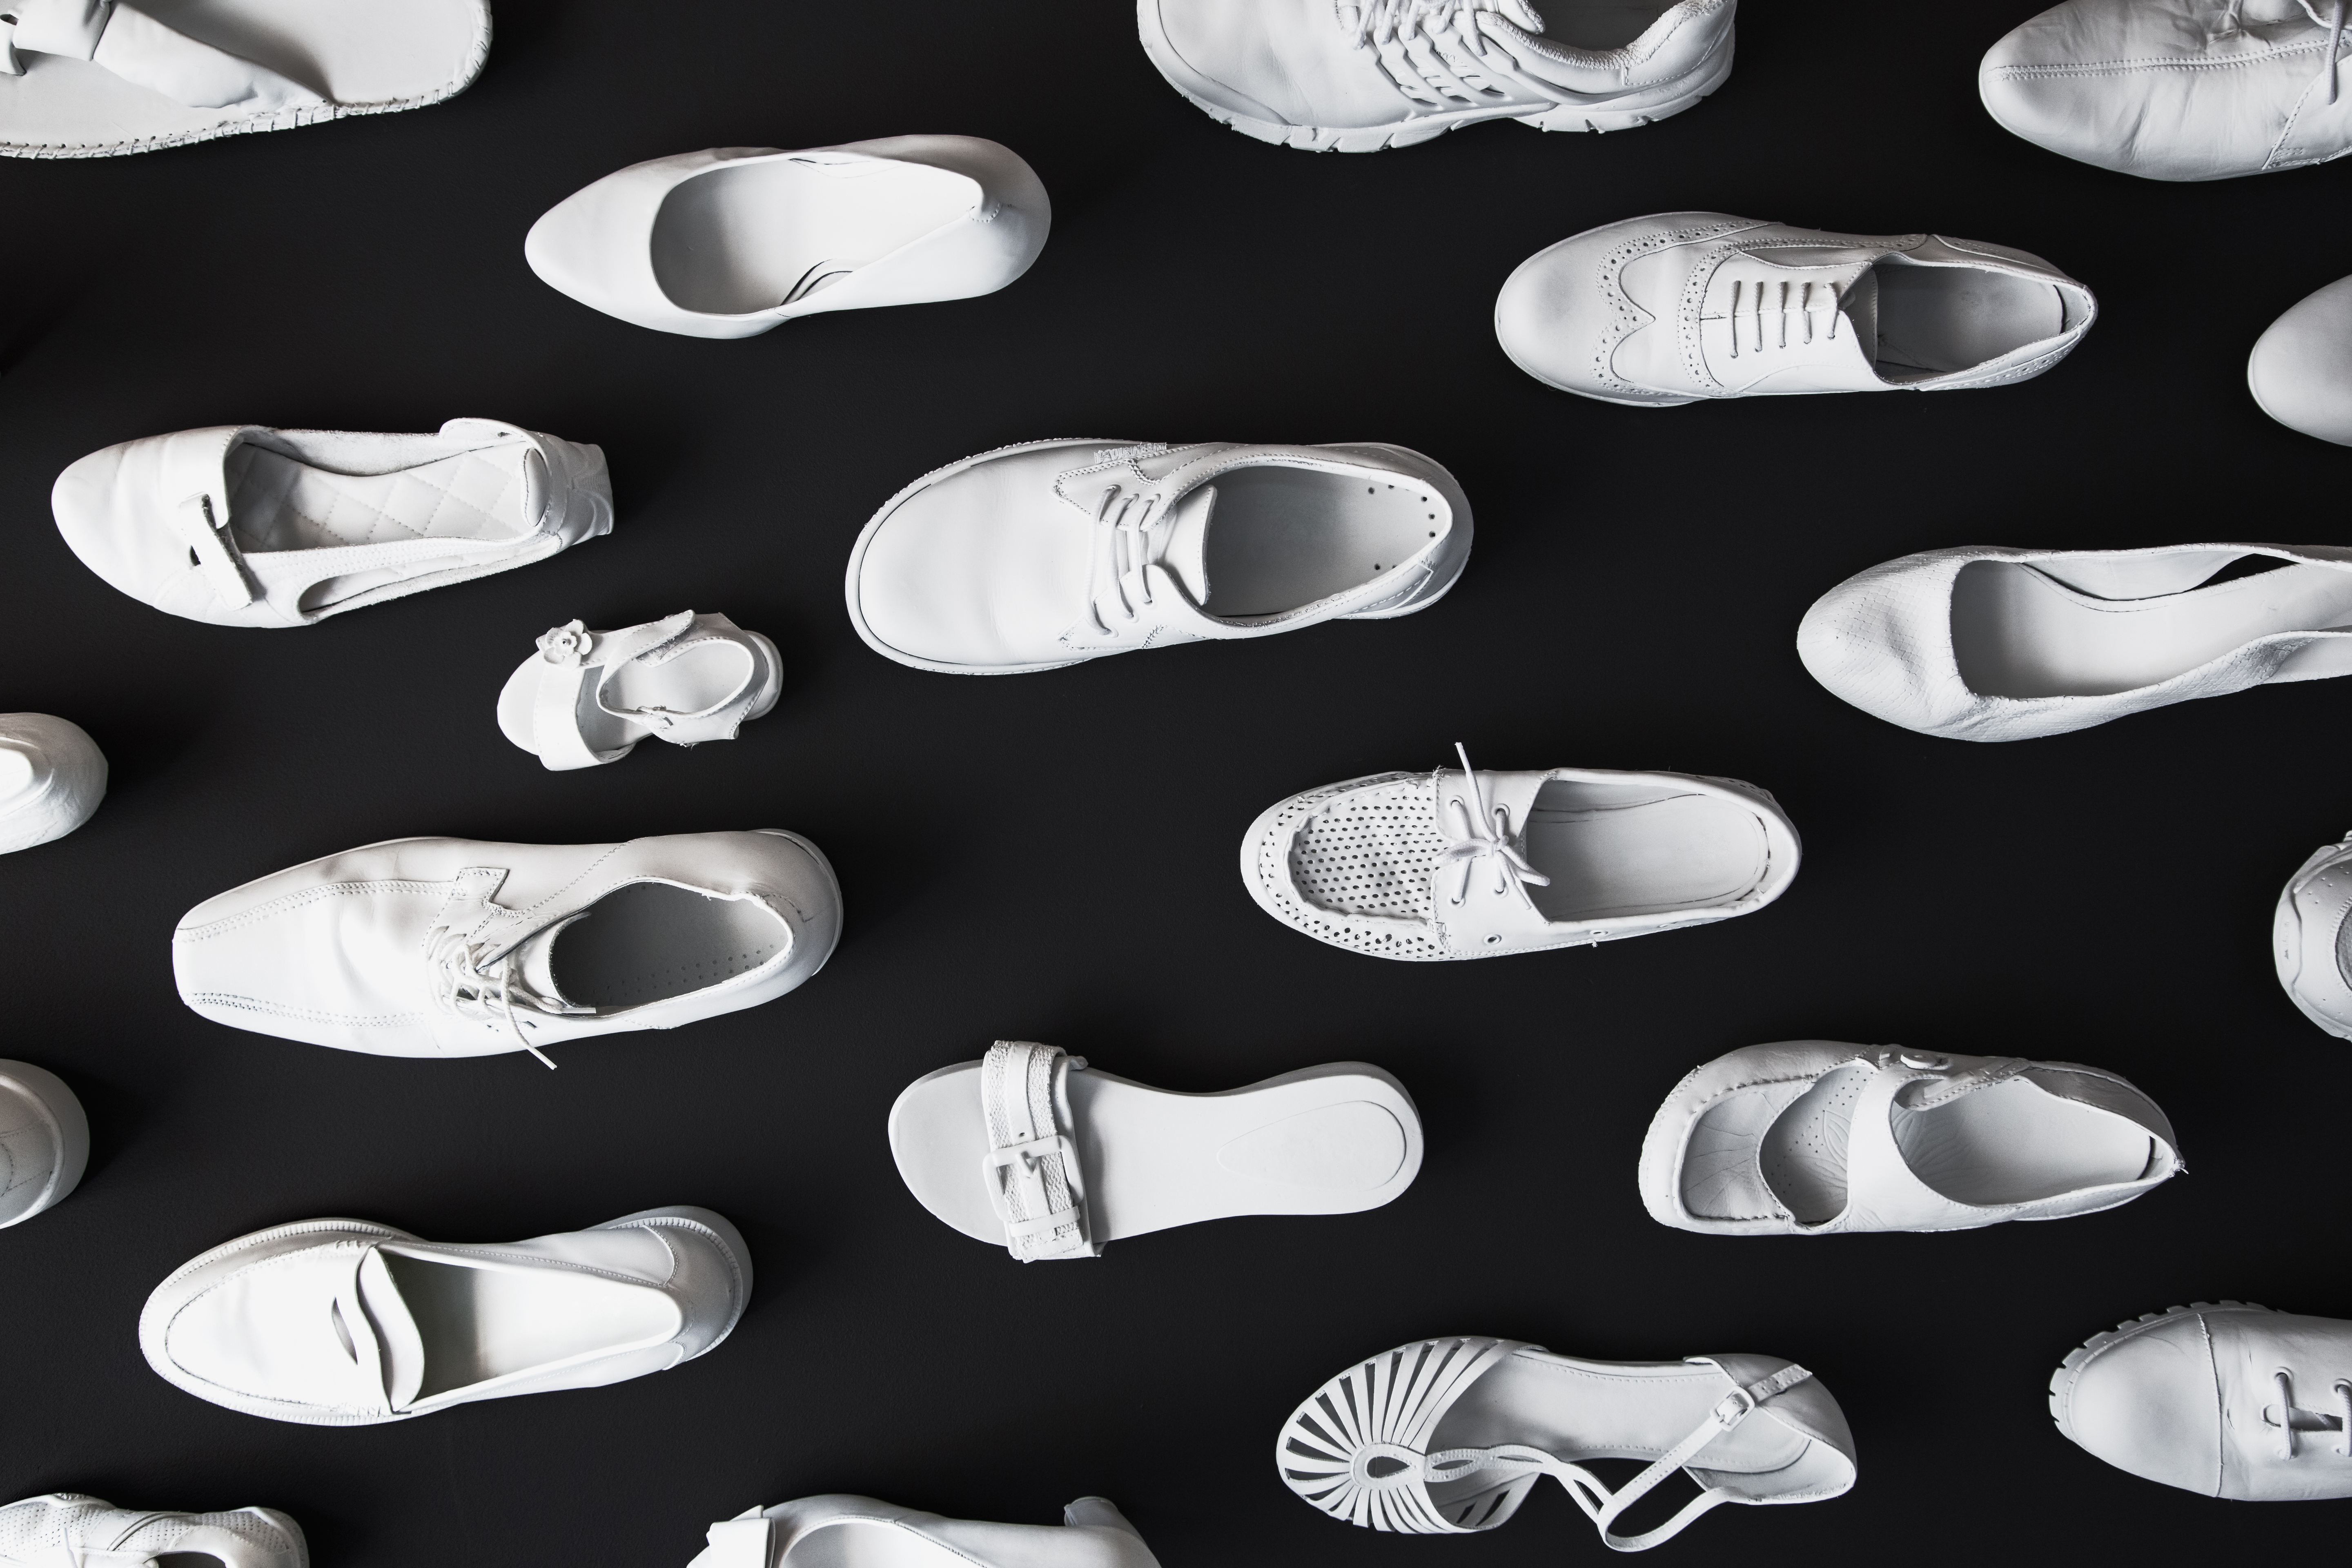 Many different white shoes on a black background